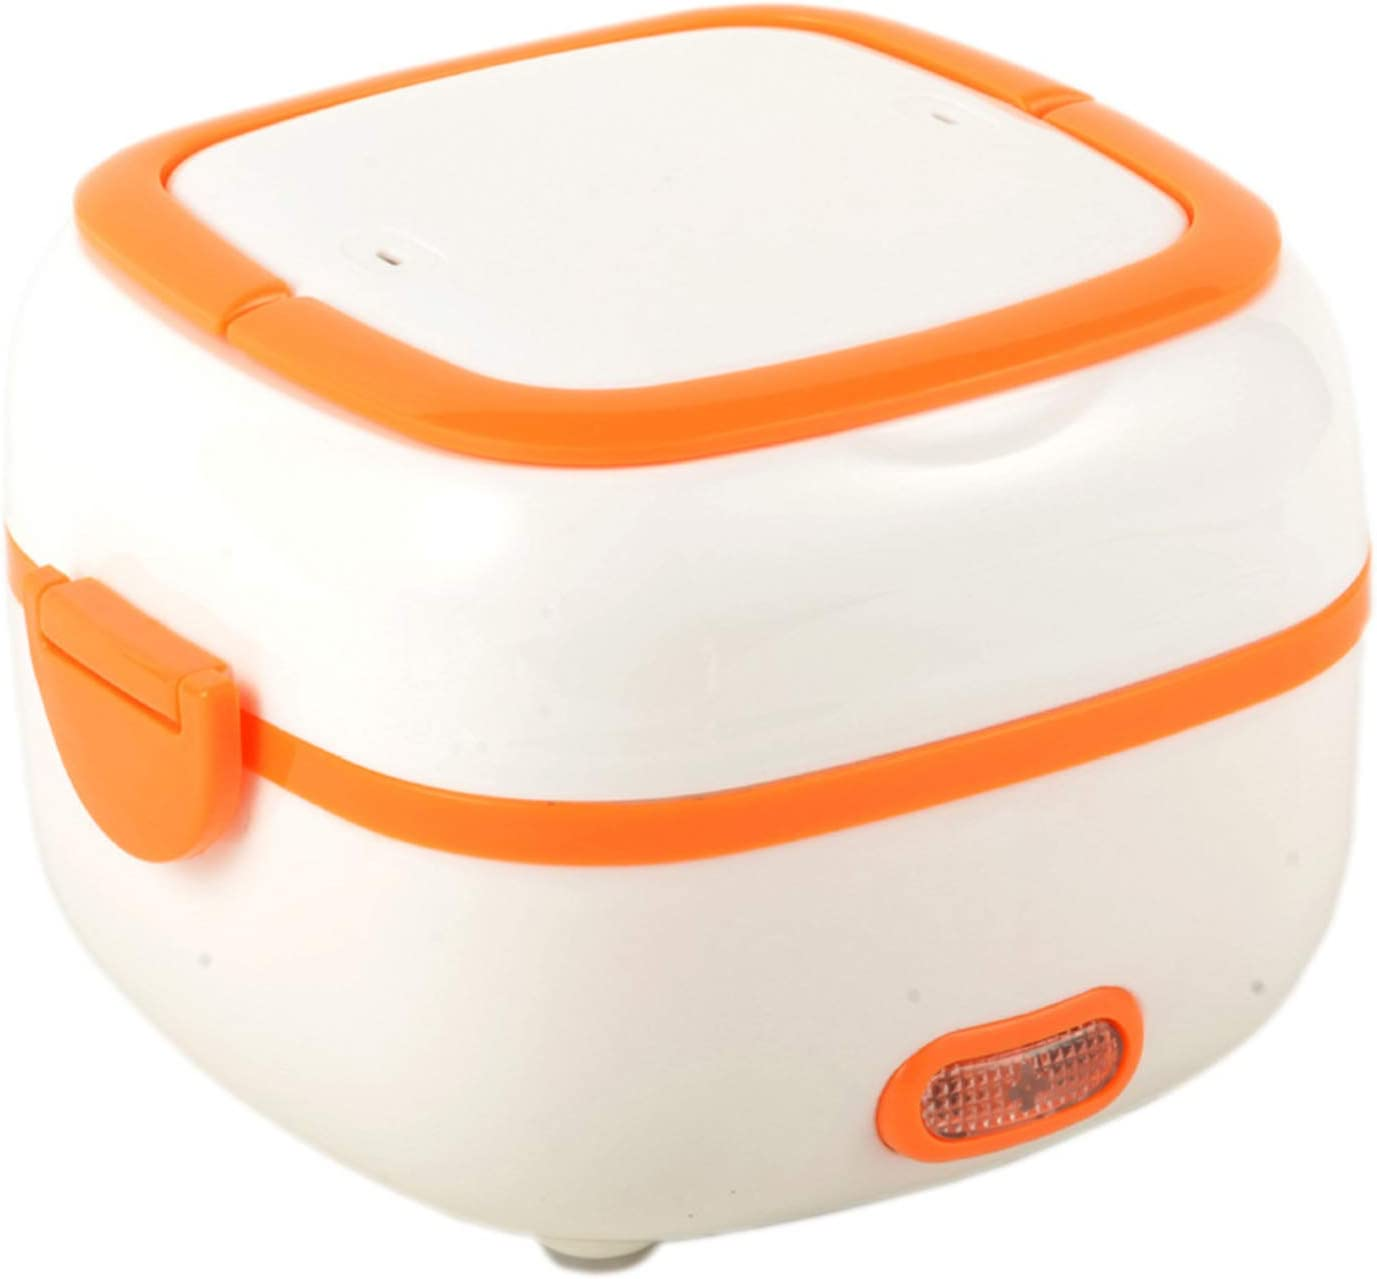 Some reservation ZYQDRZ Multifunctional Electric Cooking NEW Heat Box Lunch Plug-in